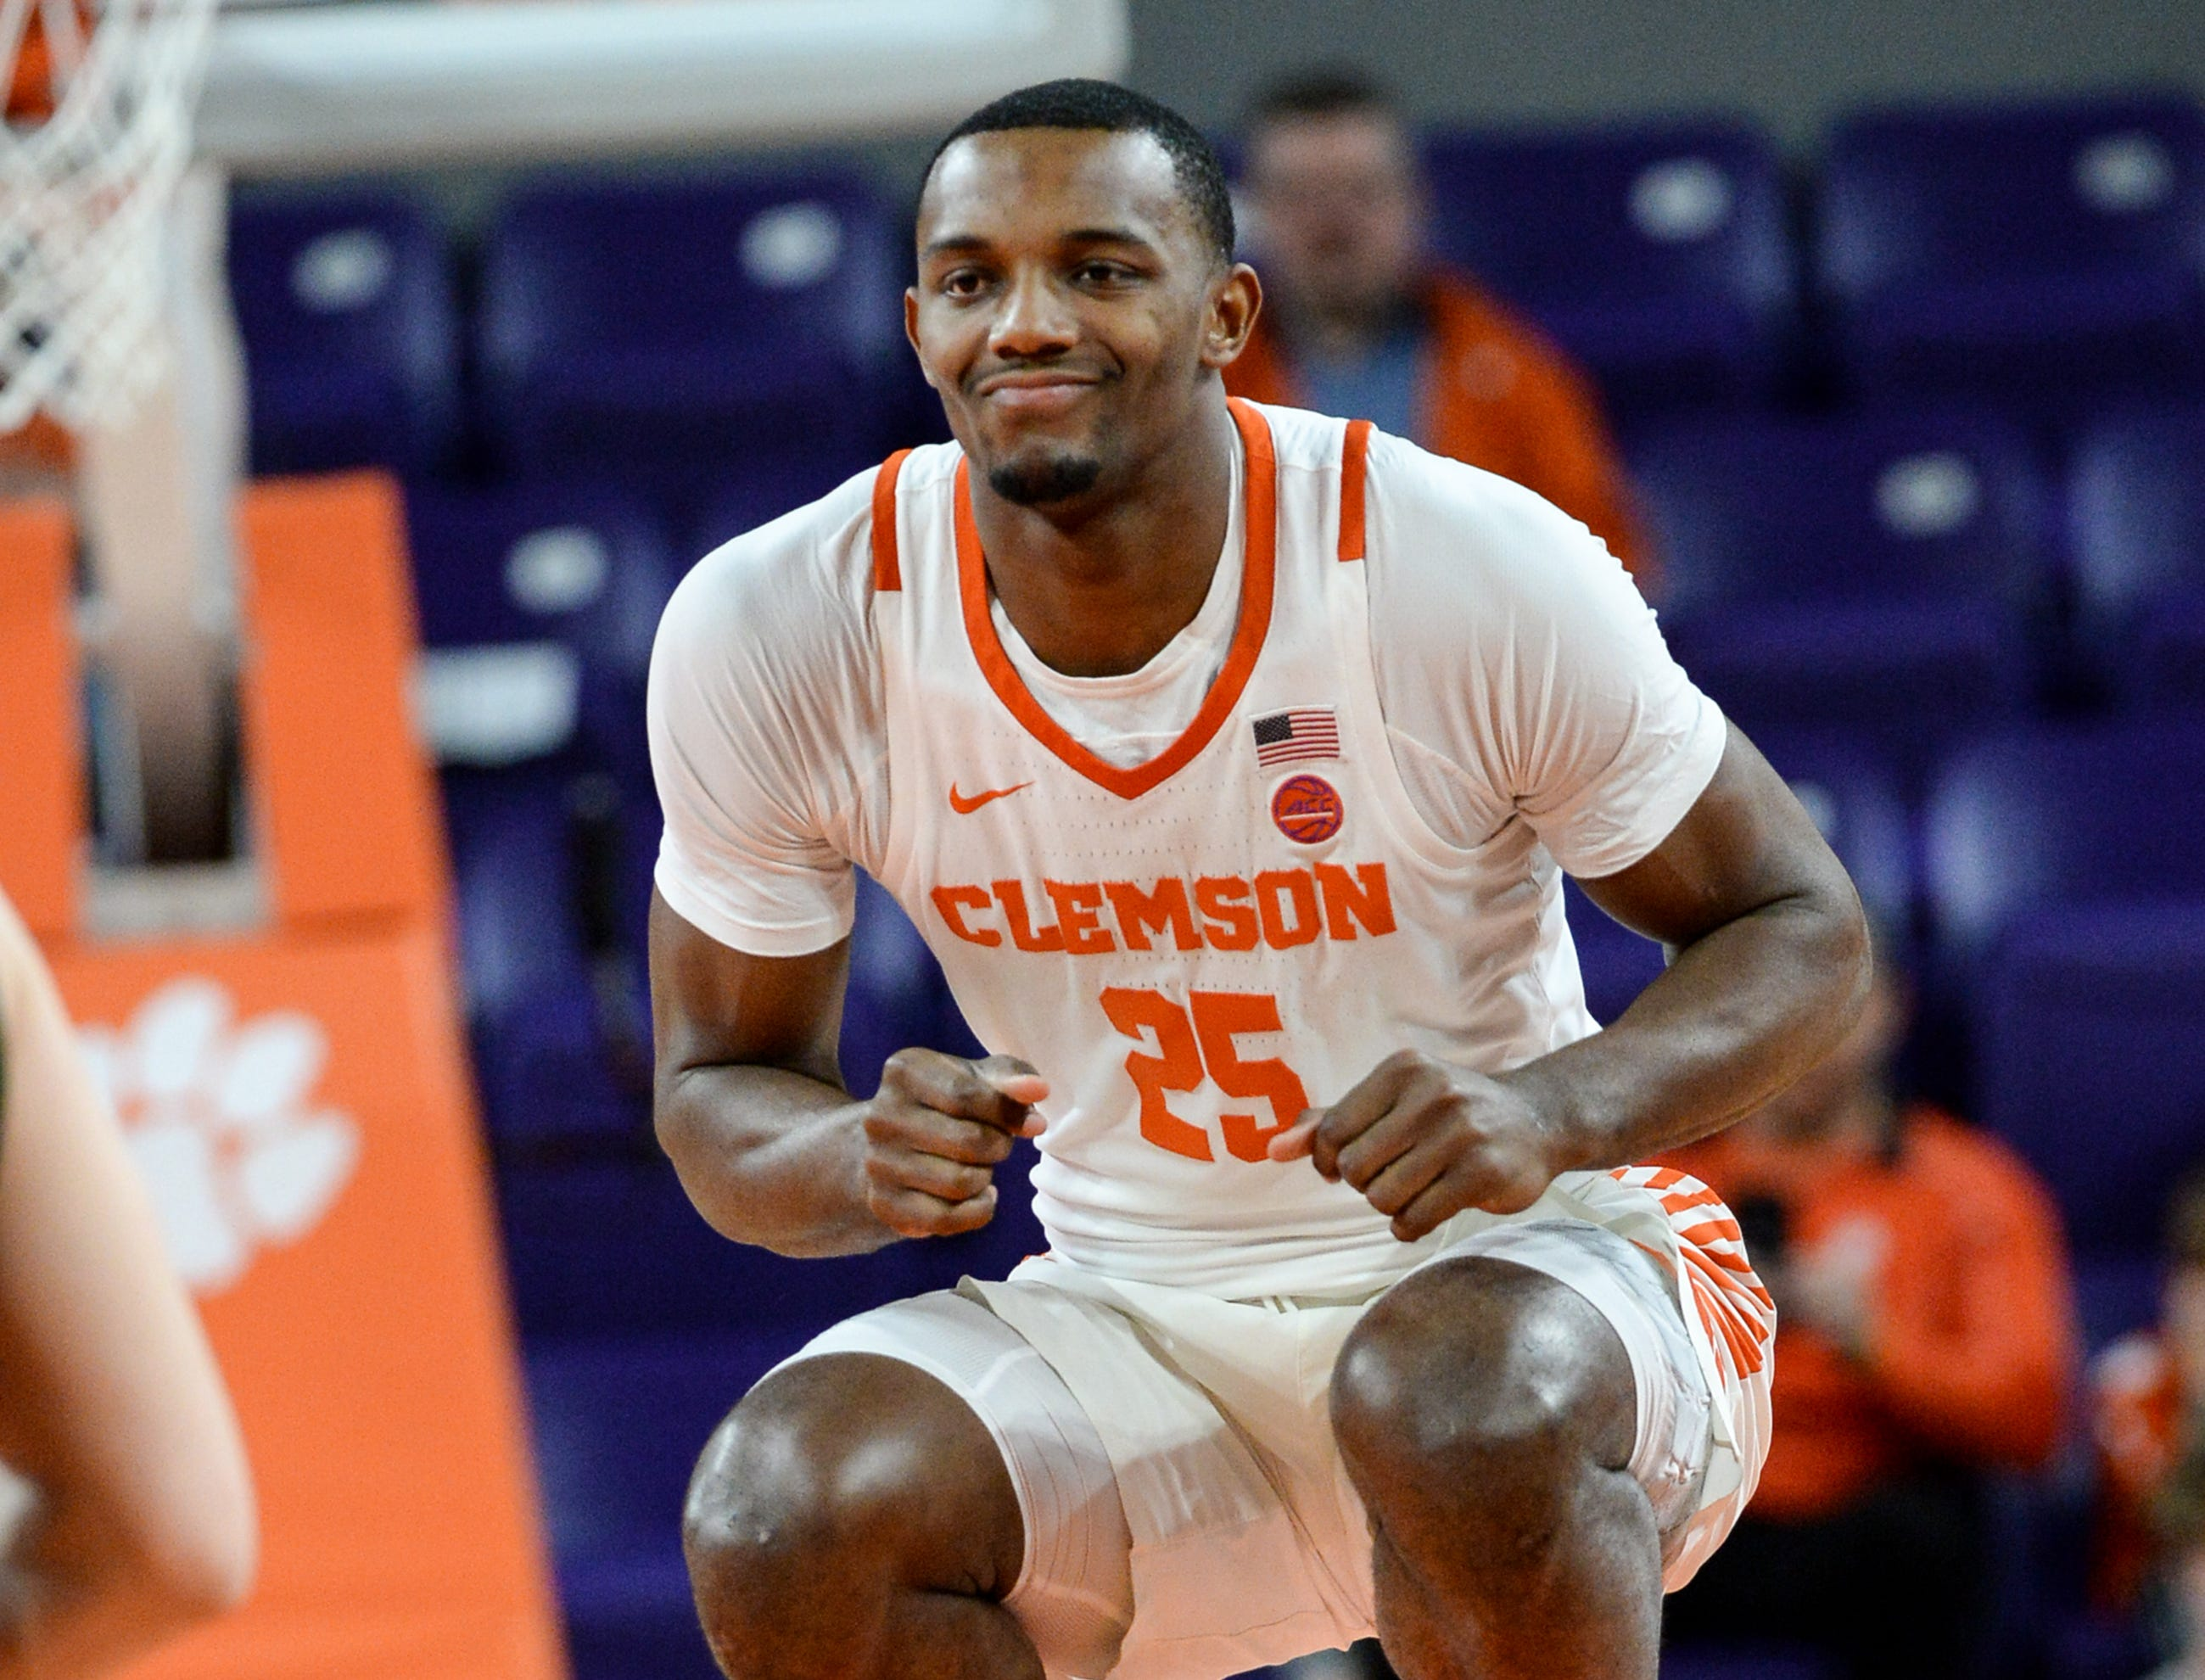 Clemson forward Aamir Simms (25) jumps before tipoff with Wright State before the NIT at Littlejohn Coliseum in Clemson Tuesday, March 19, 2019.